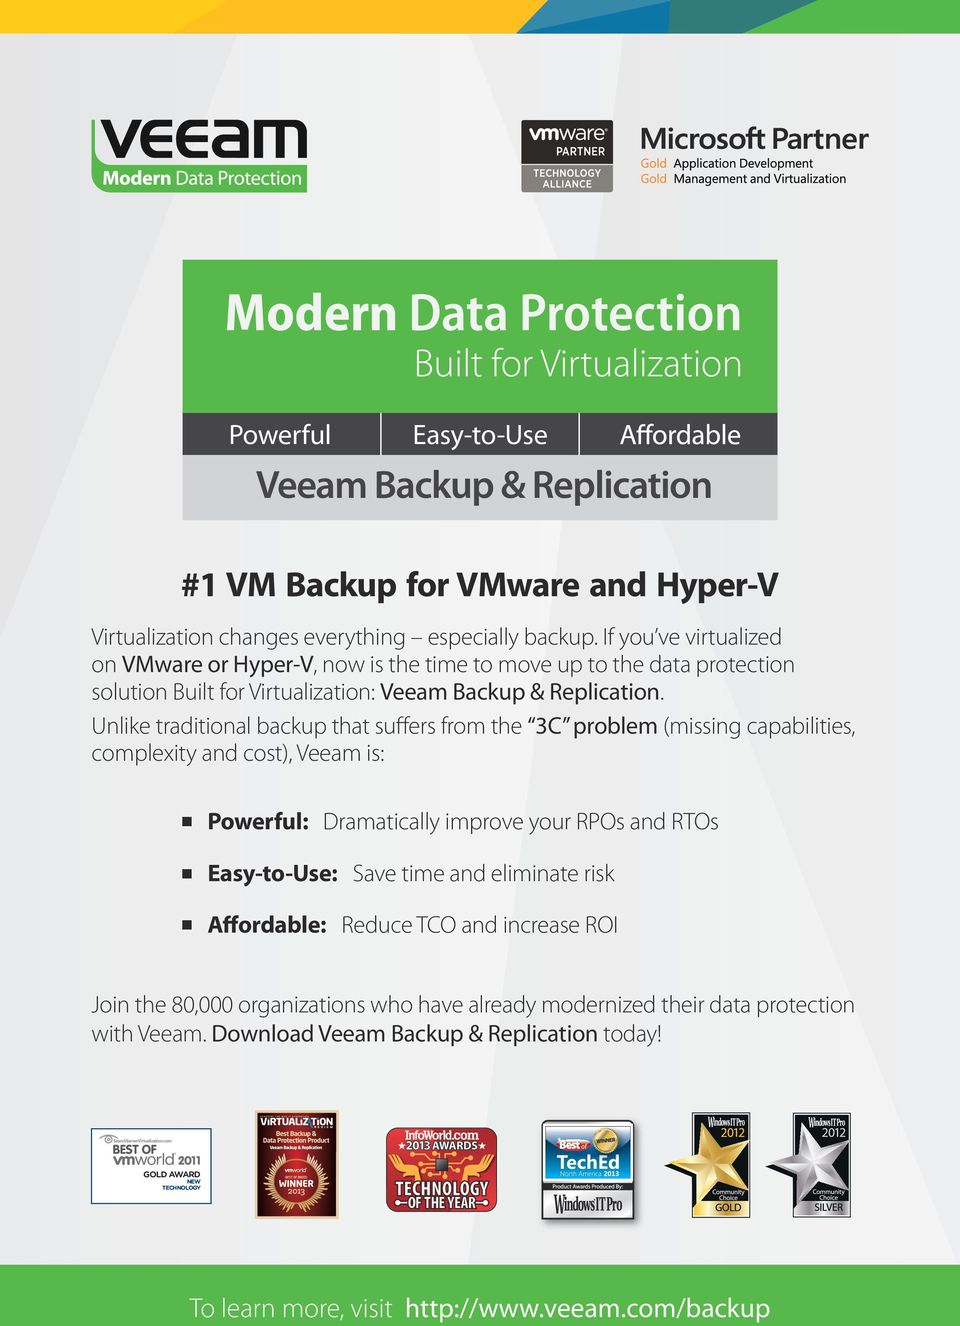 Unlike traditional backup that suffers from the 3C problem (missing capabilities, complexity and cost), Veeam is: Powerful: Dramatically improve your RPOs and RTOs Easy-to-Use: Save time and